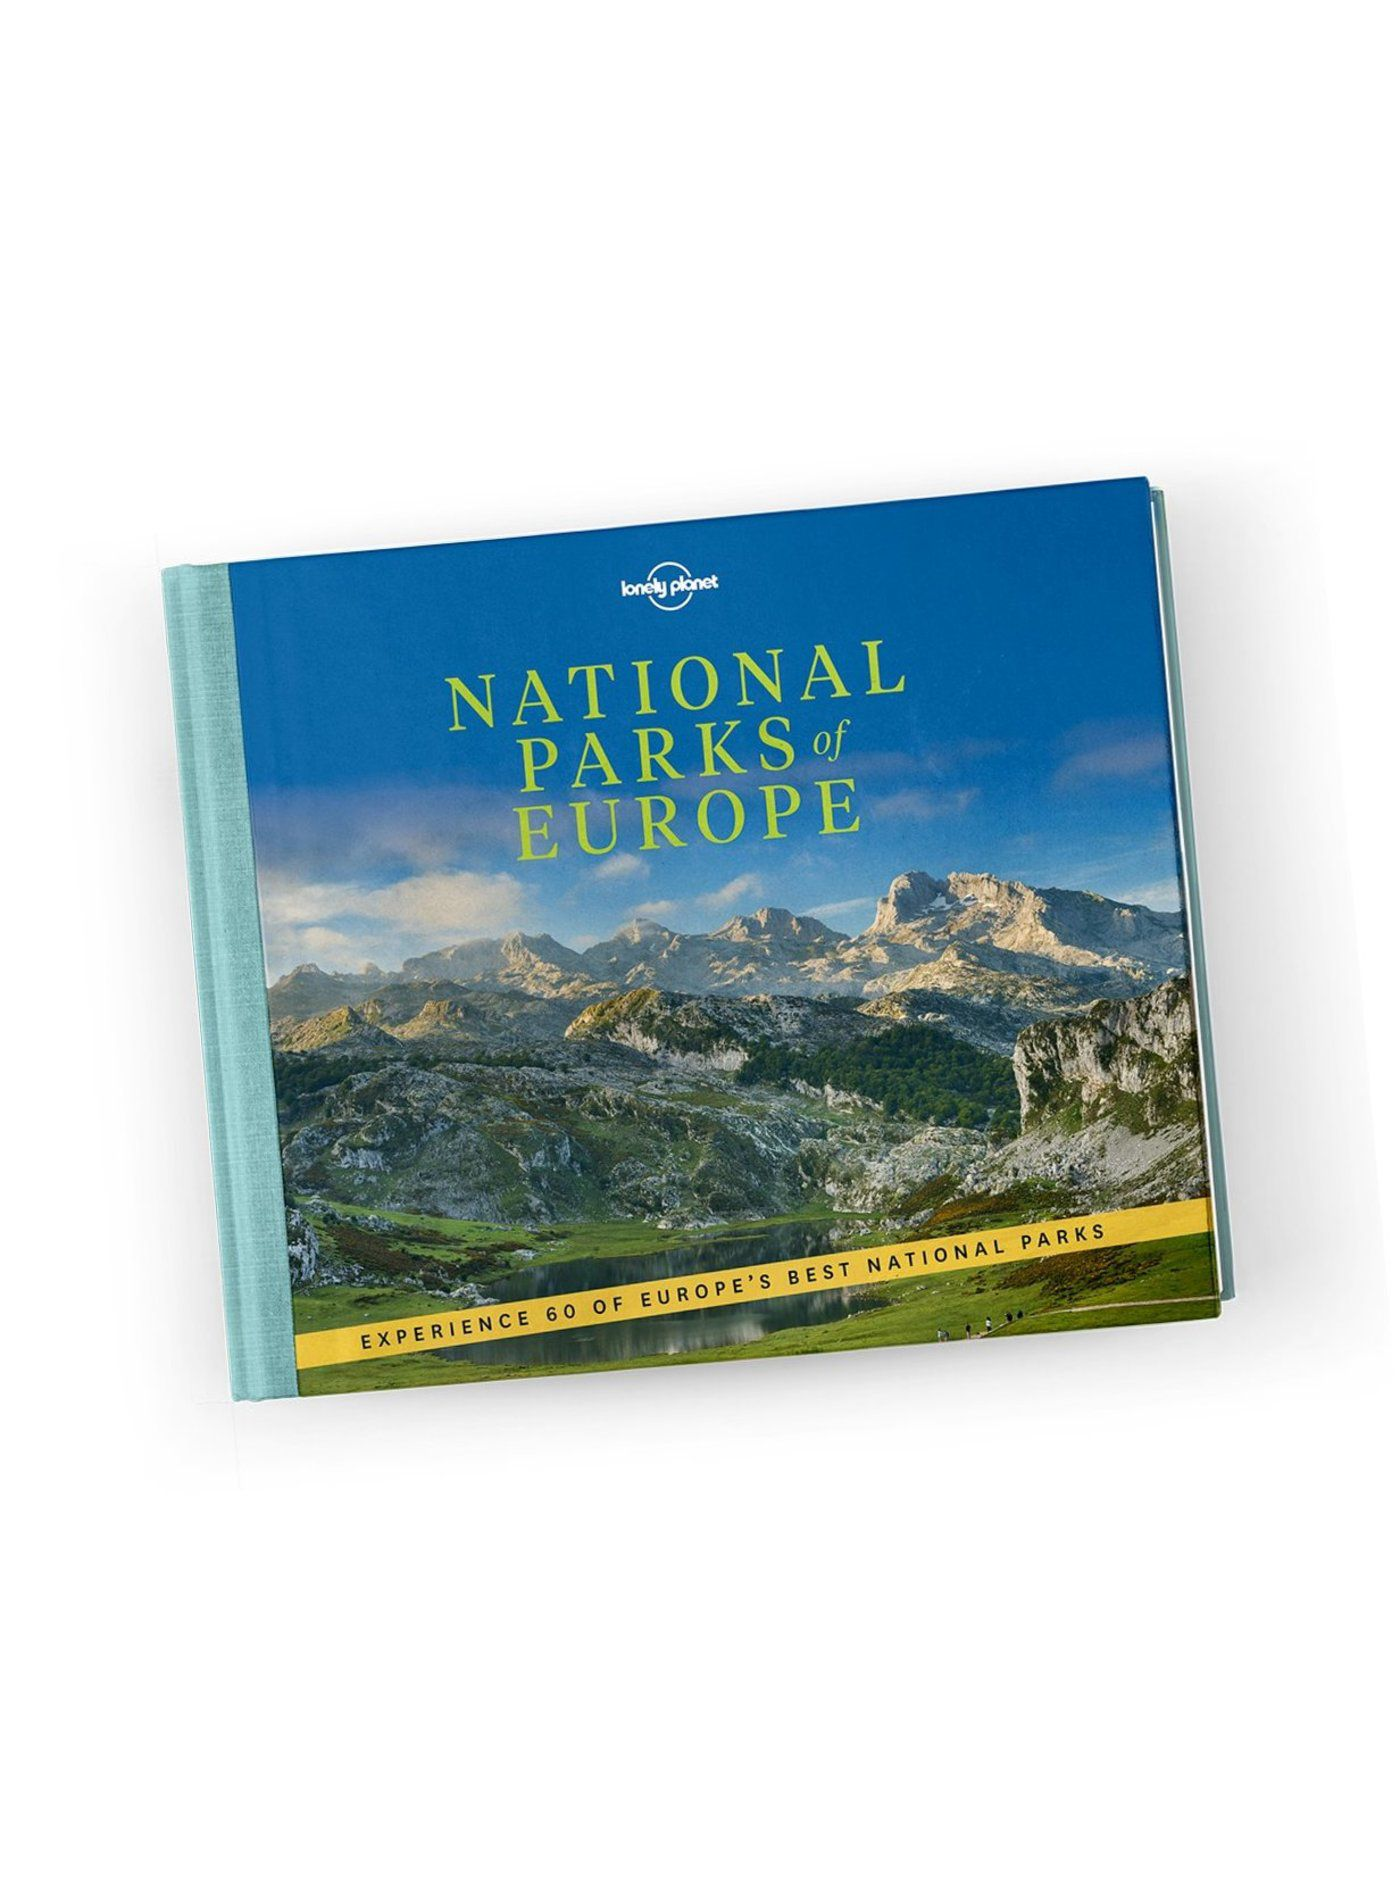 National Parks of Europe (Hardcover pictorial)